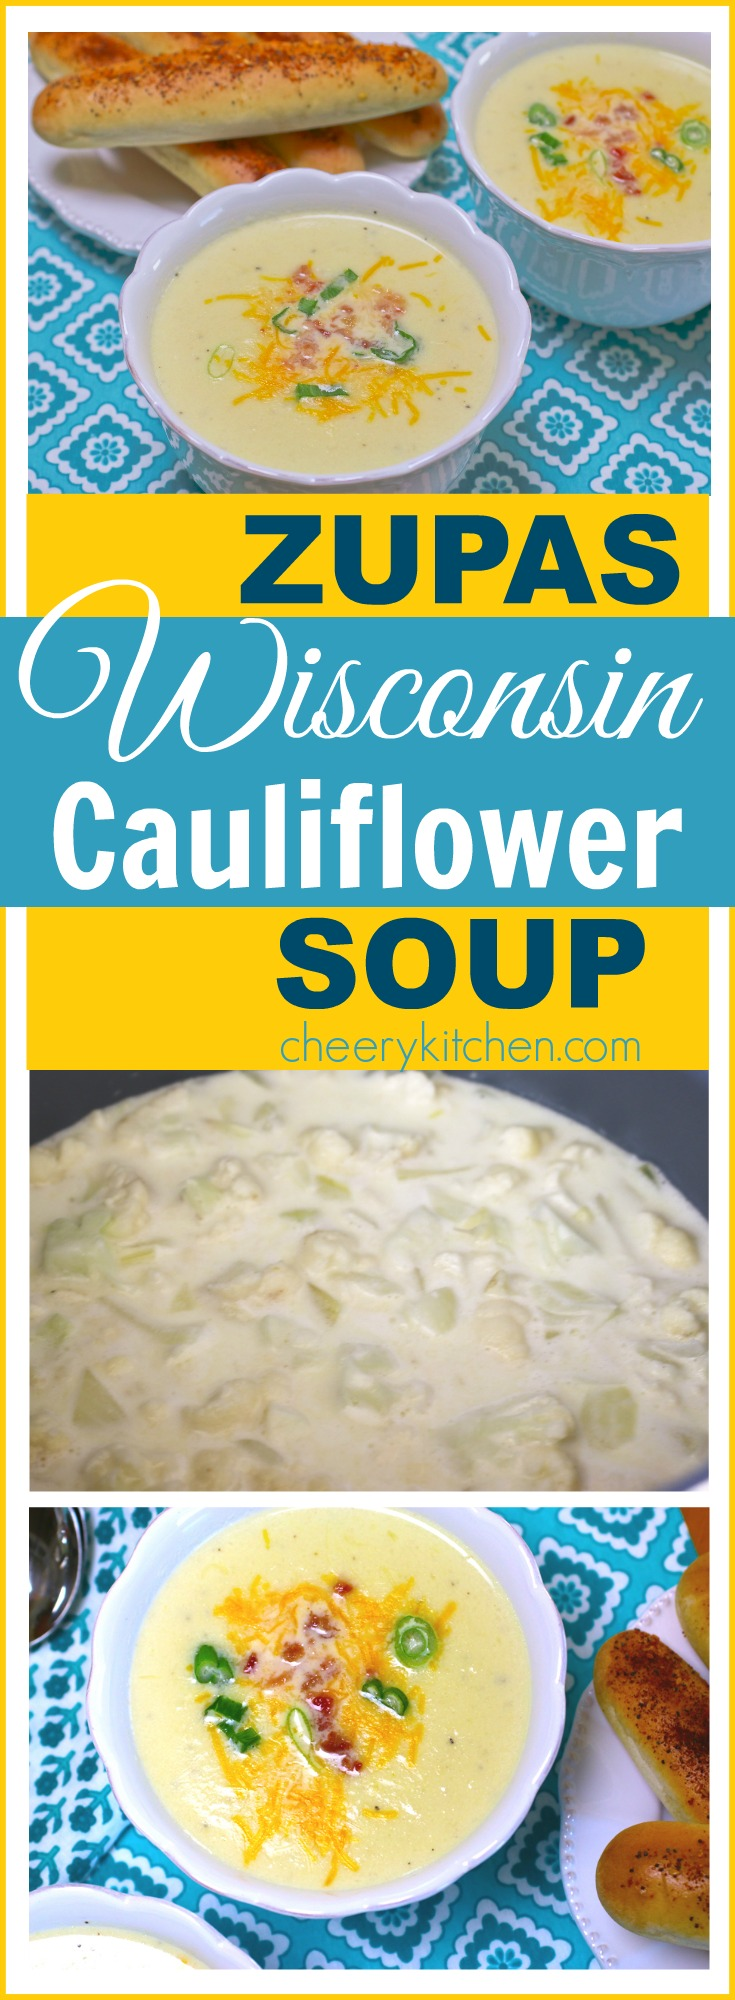 Sensational Zupas Wisconsin Cauliflower Soup is flavorful, topped with cheese, onions, and bacon, YUM!